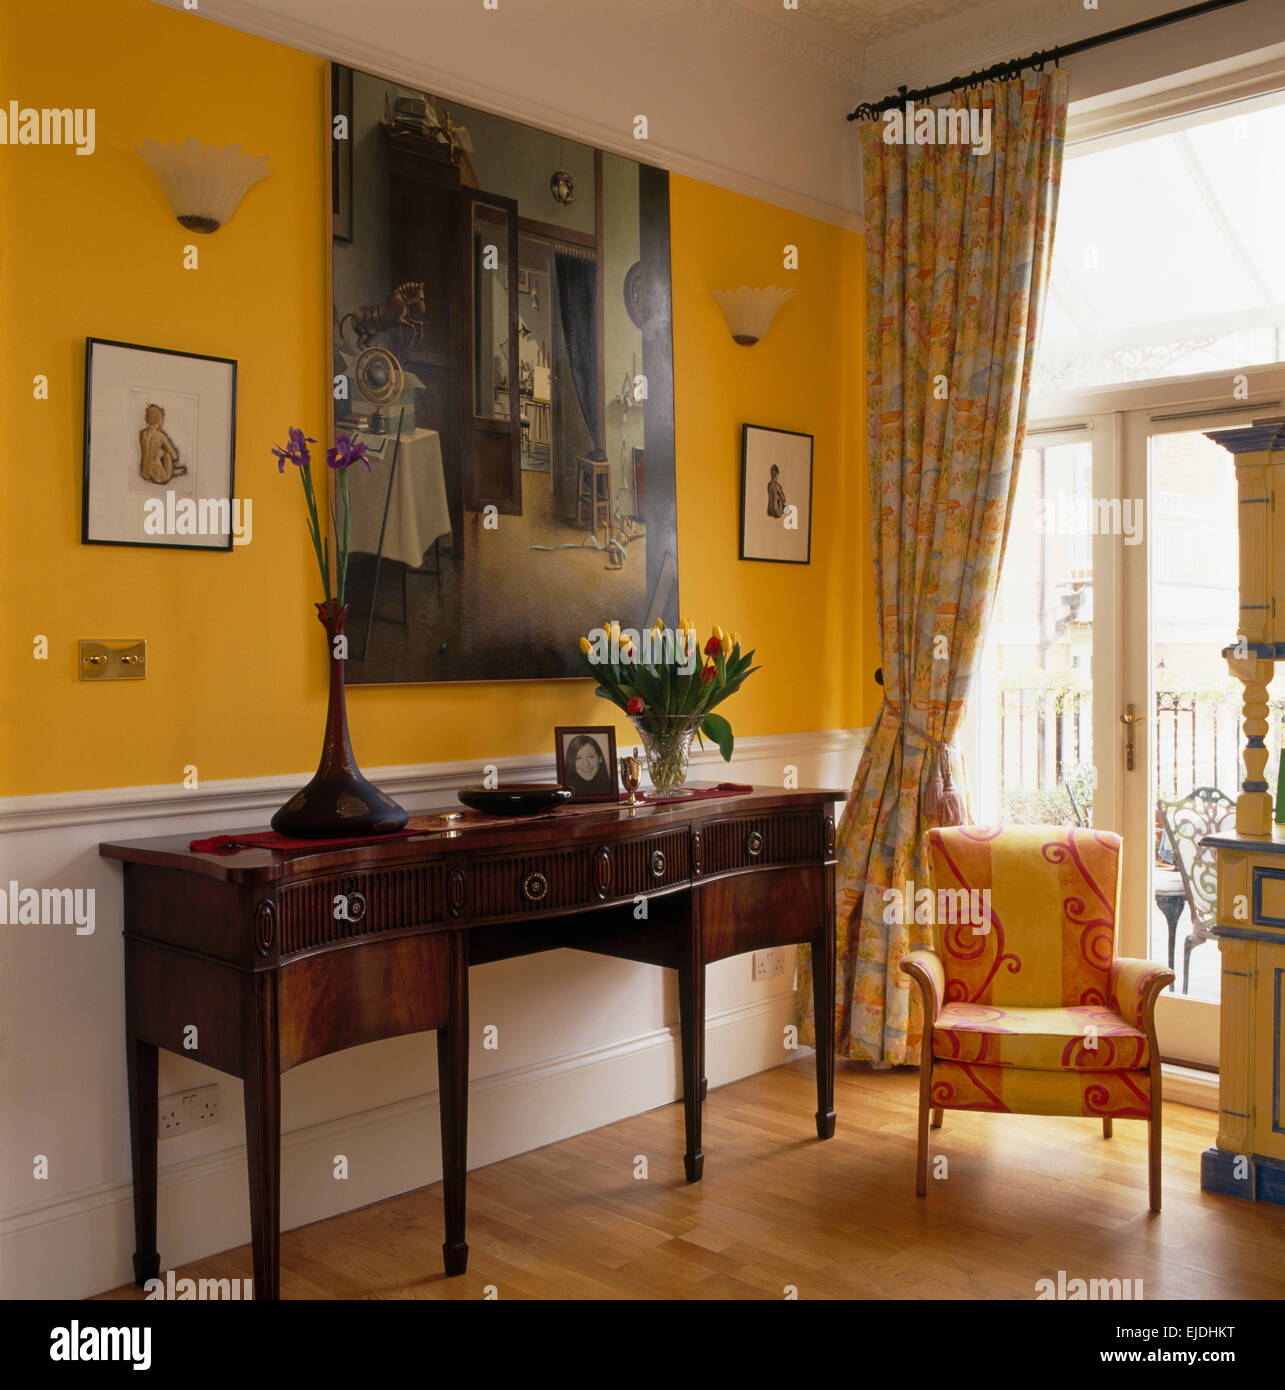 Large Painting Above Antique Console Table In Bright Yellow Hall With Yellow+pink  Upholstered Chair And Wooden Flooring